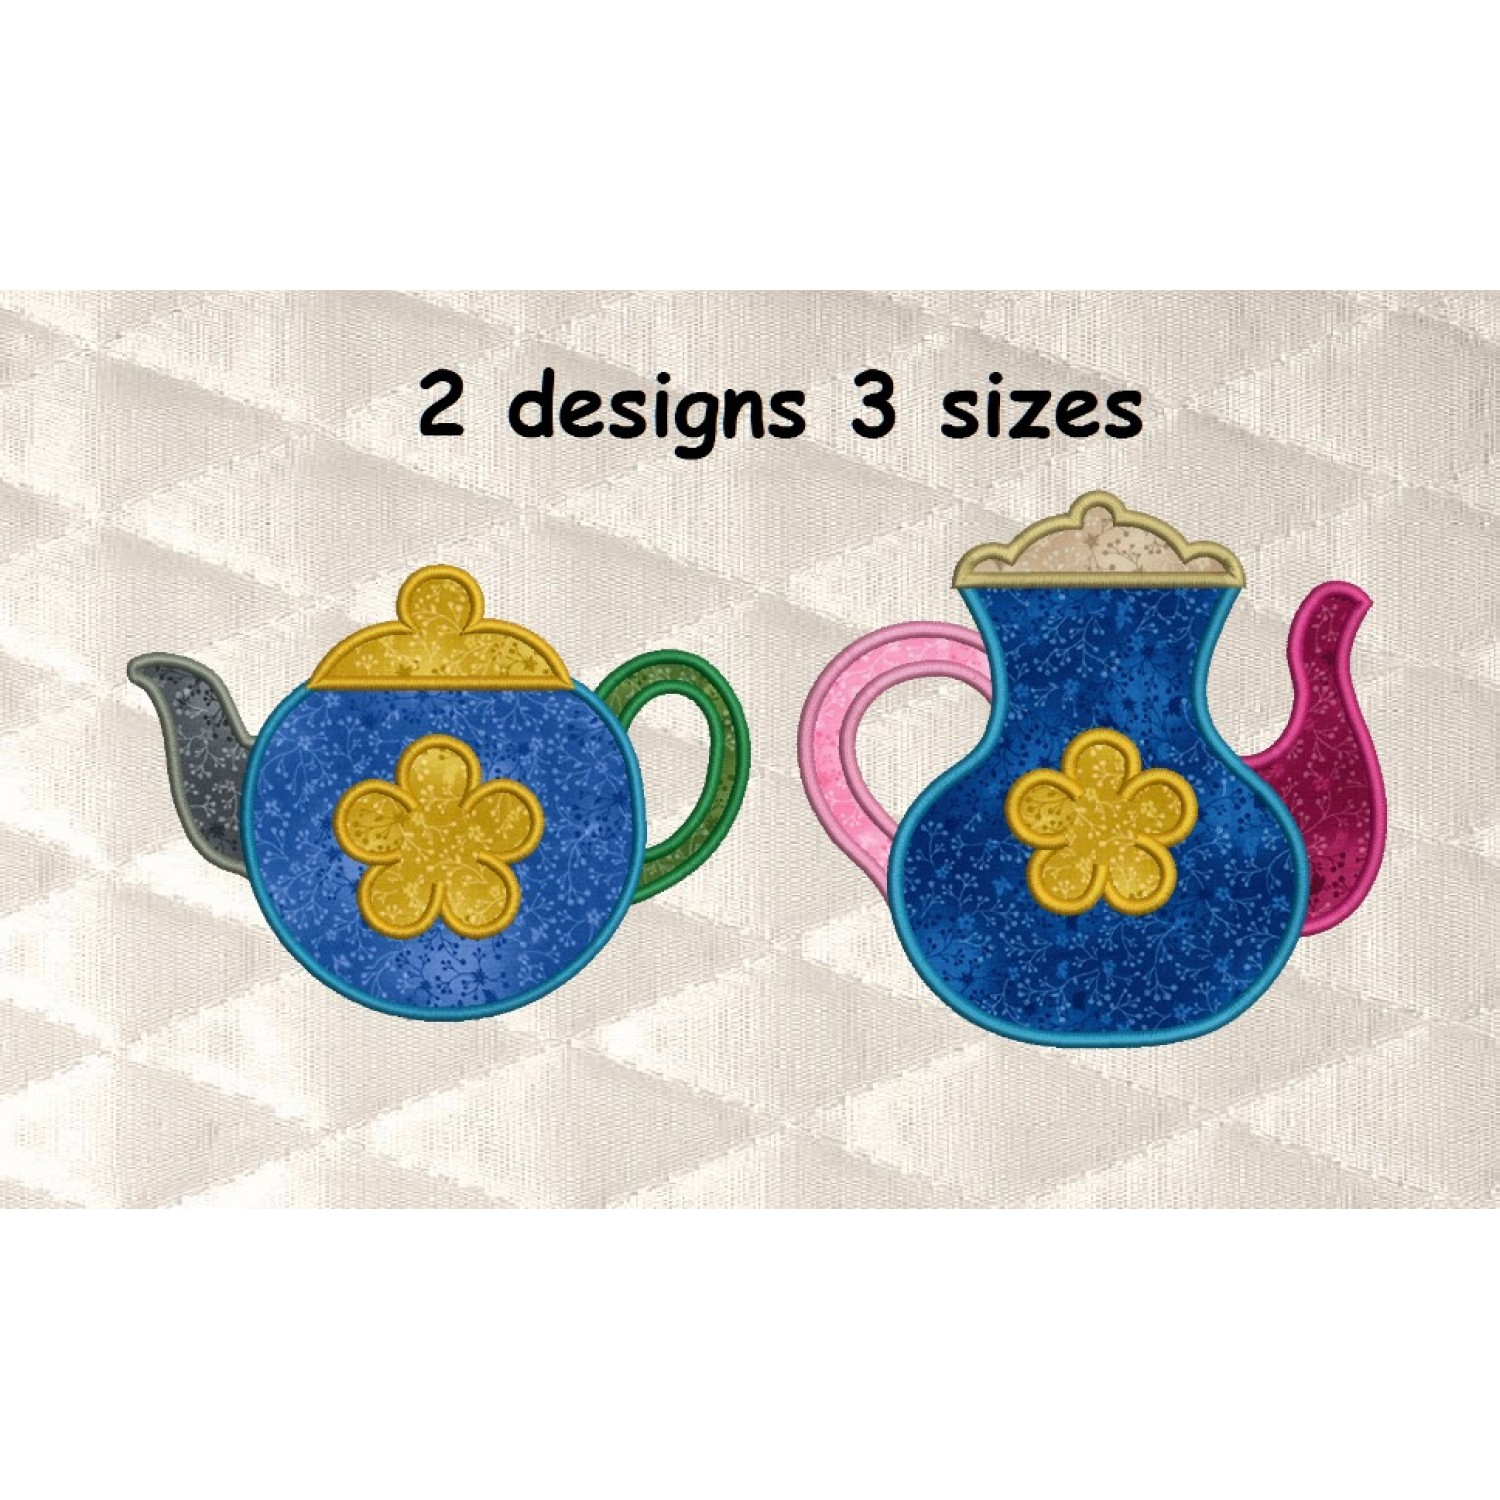 Teapot with flower applique 2 designs 3 sizes